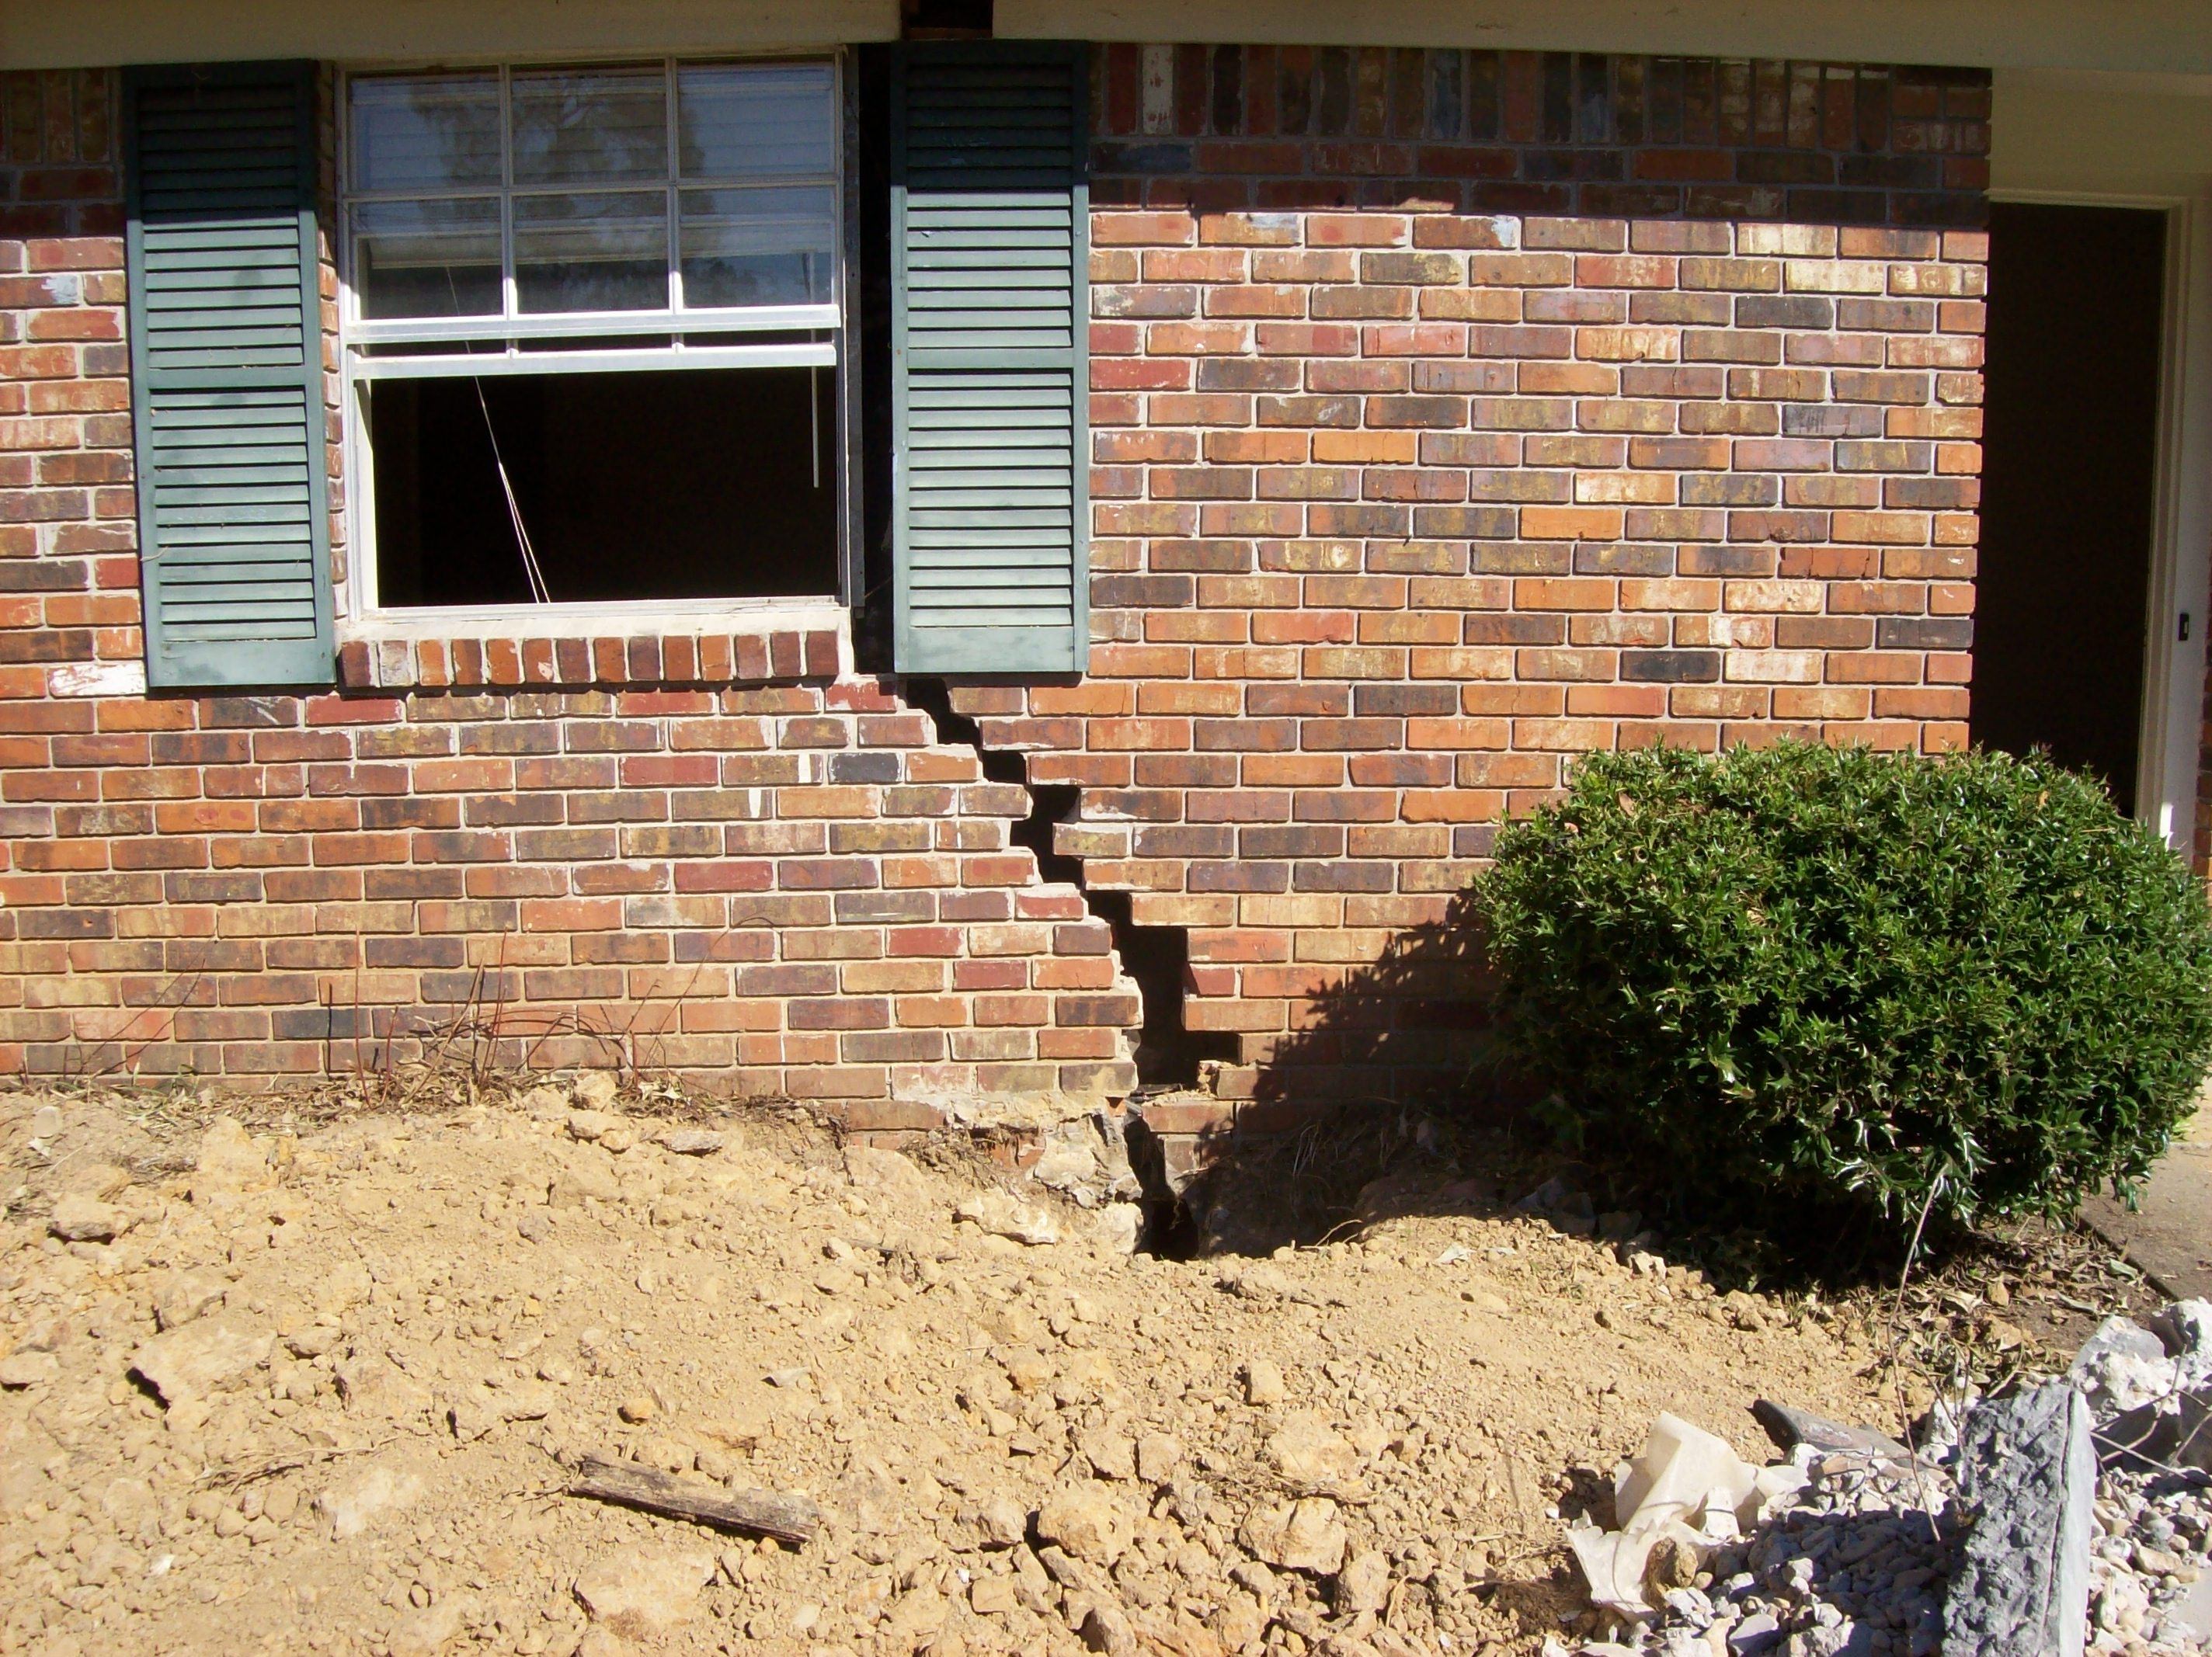 Subsidence Damage Repairs - Structural Repairs, Property Restoration Services